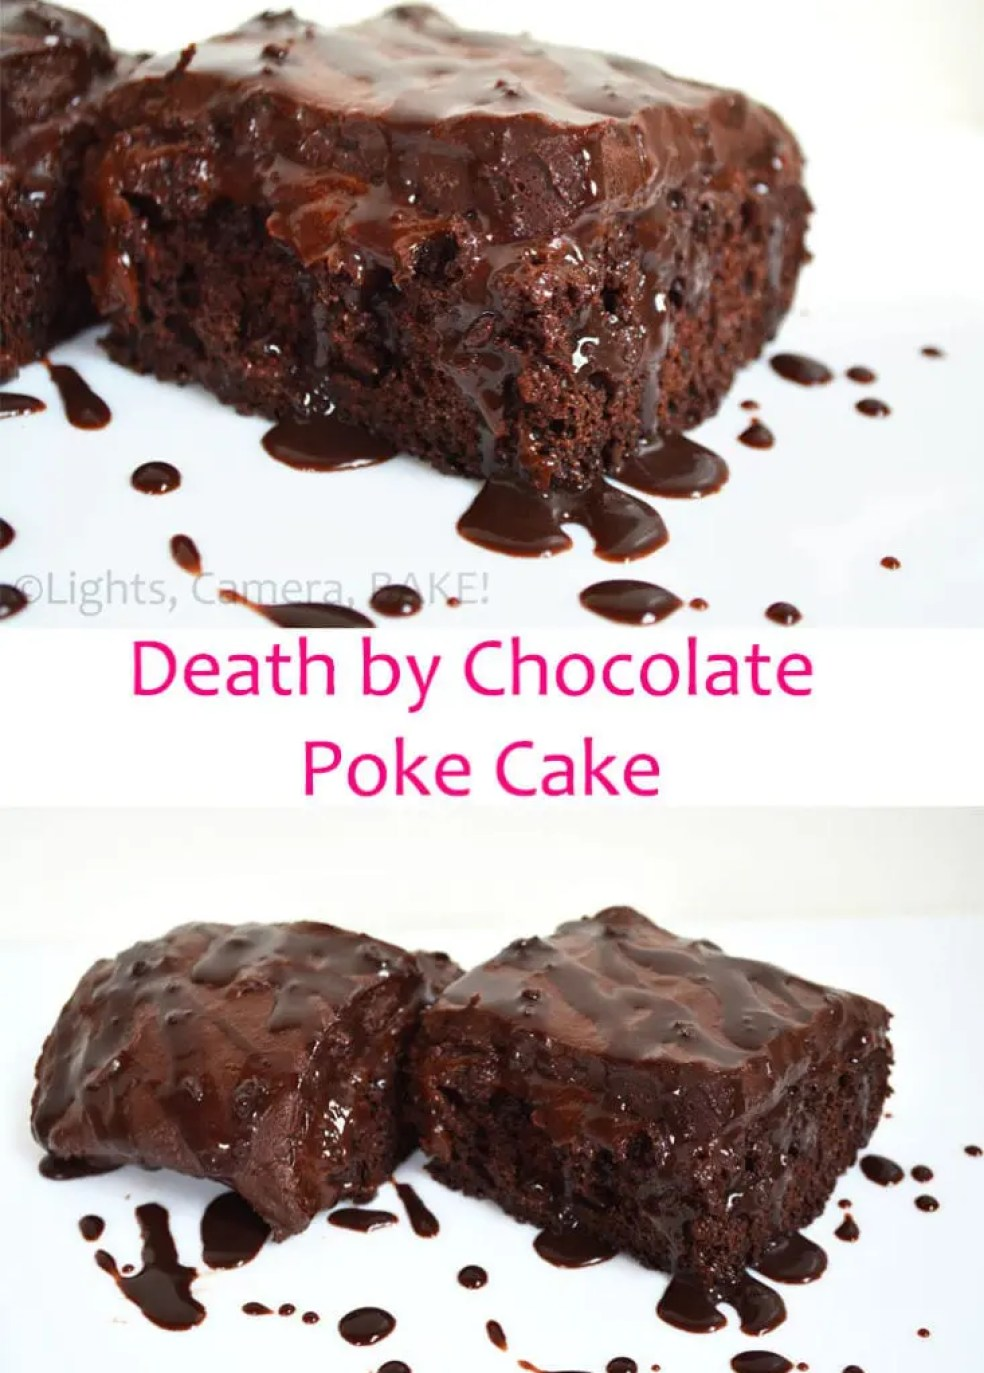 Death By Chocolate Poke Cake. A rich, dense chocolate cake, smothered in chocolate pudding, iced with chocolate buttercream icing and then topped with chocolate ganache! This is for the serious chocolate lovers! Click the photo for the #pokecakerecipe #deathbychocolatecake #chocolatepokecake